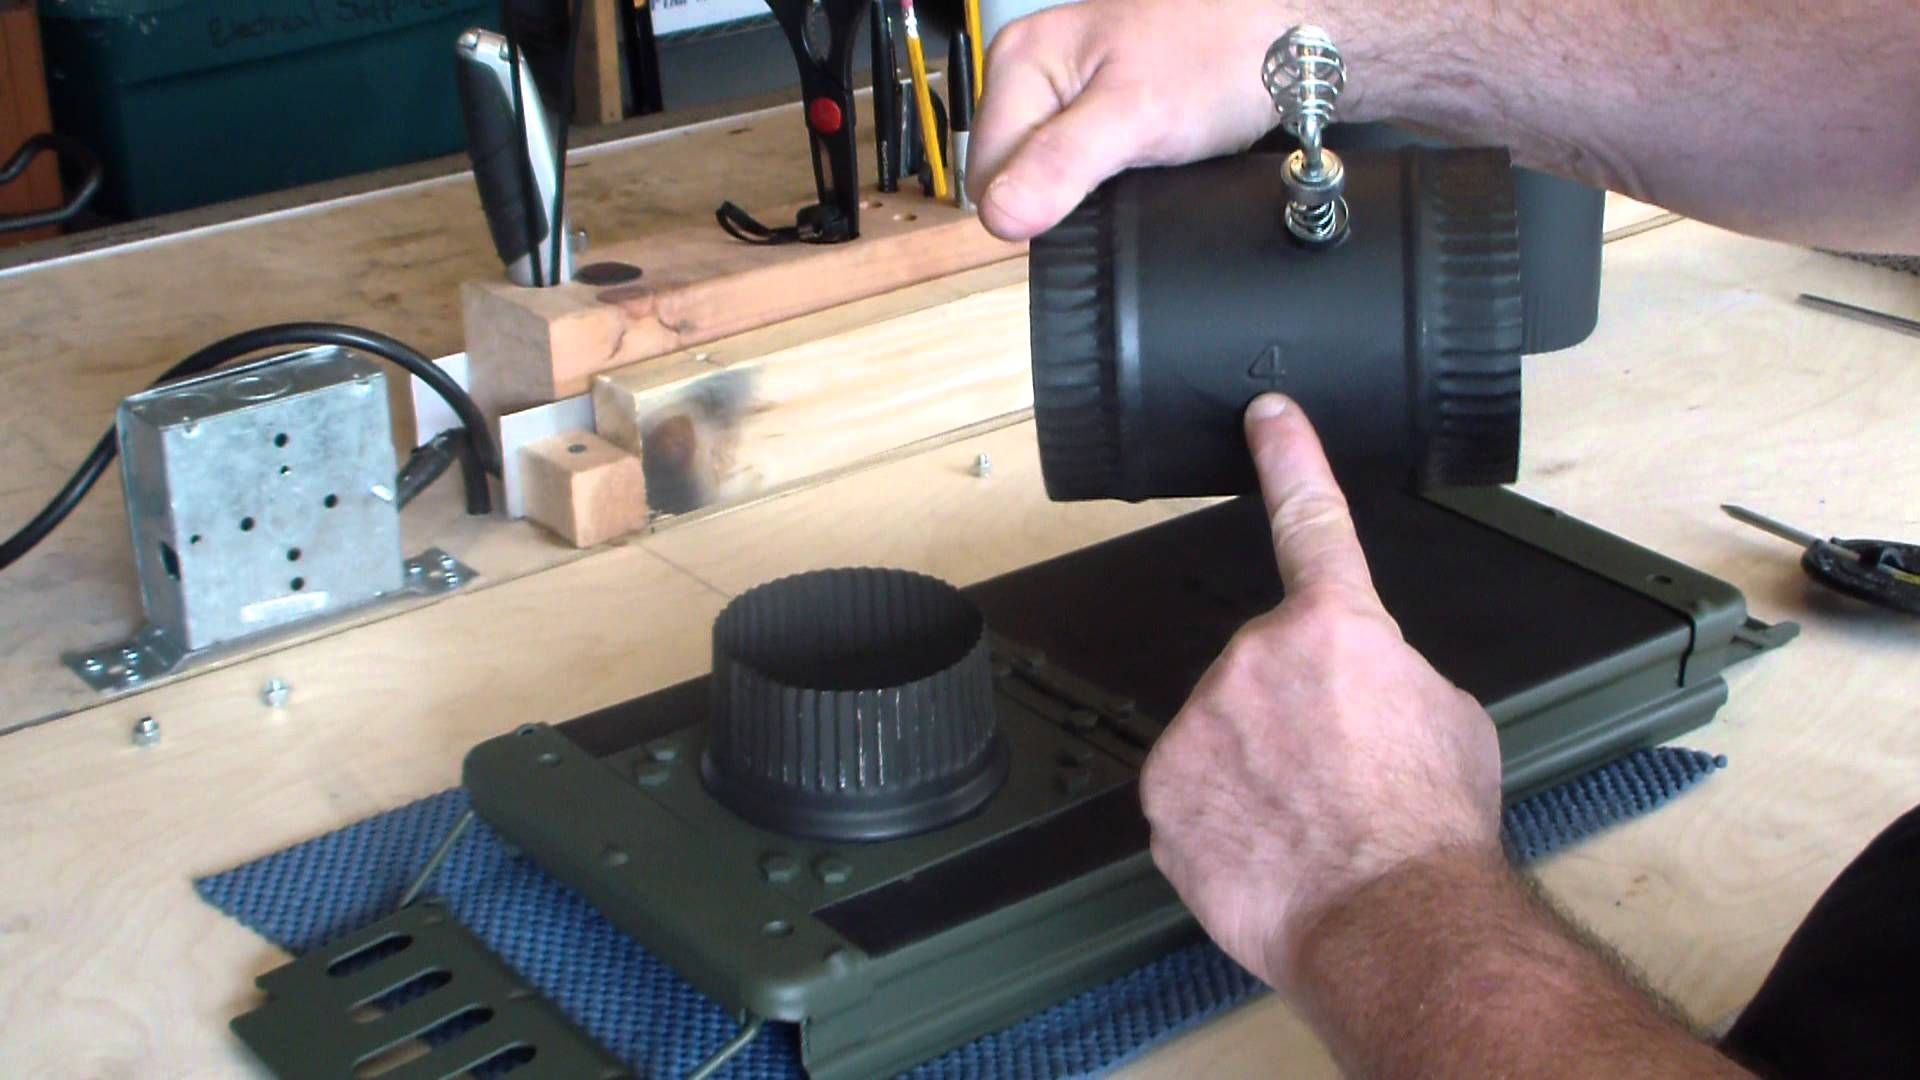 How to build a tent stove with a 20MM Ammo can | Rendezvous ...